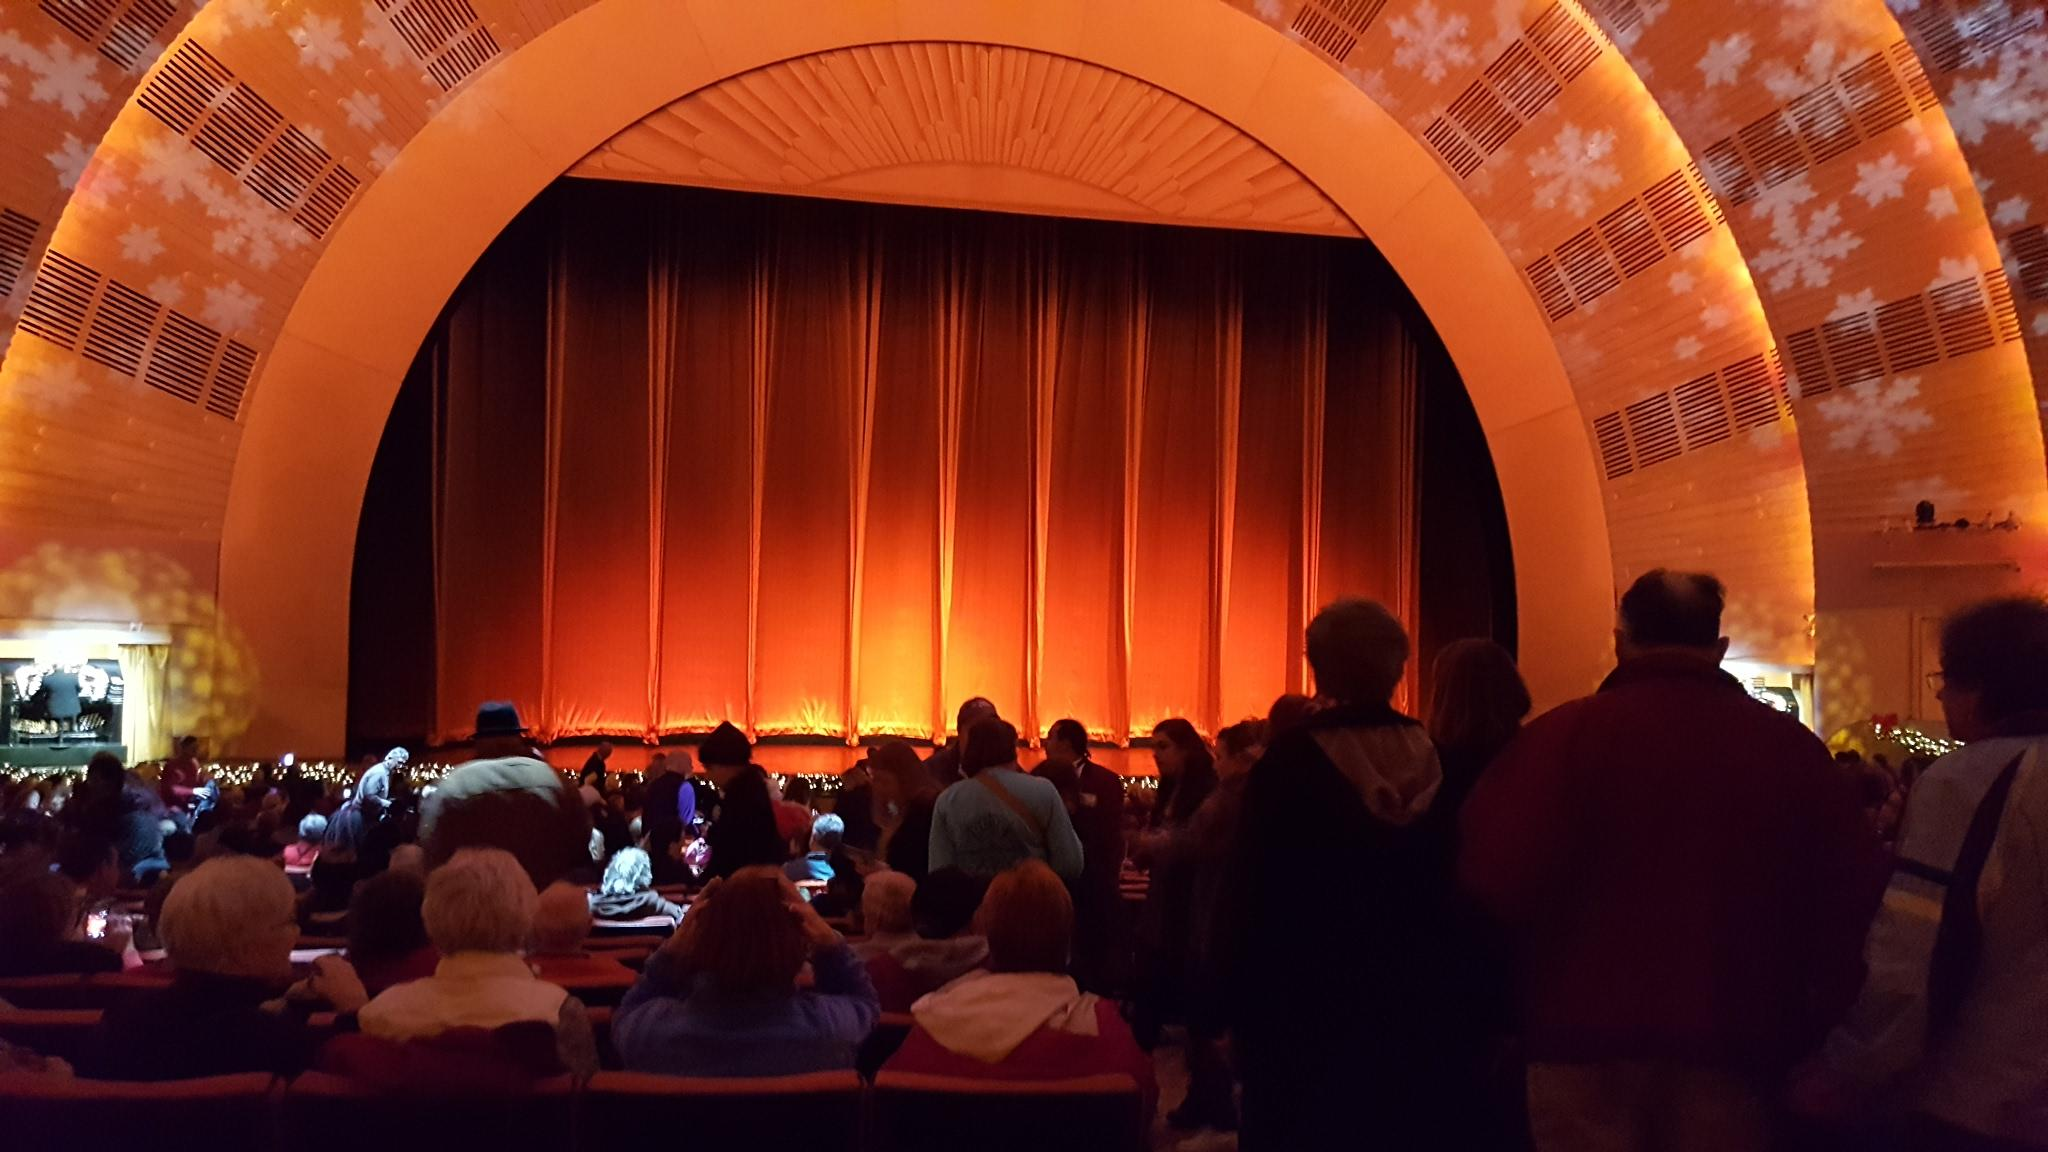 Radio City Music Hall Section Orchestra 5 Row G Seat 501-504